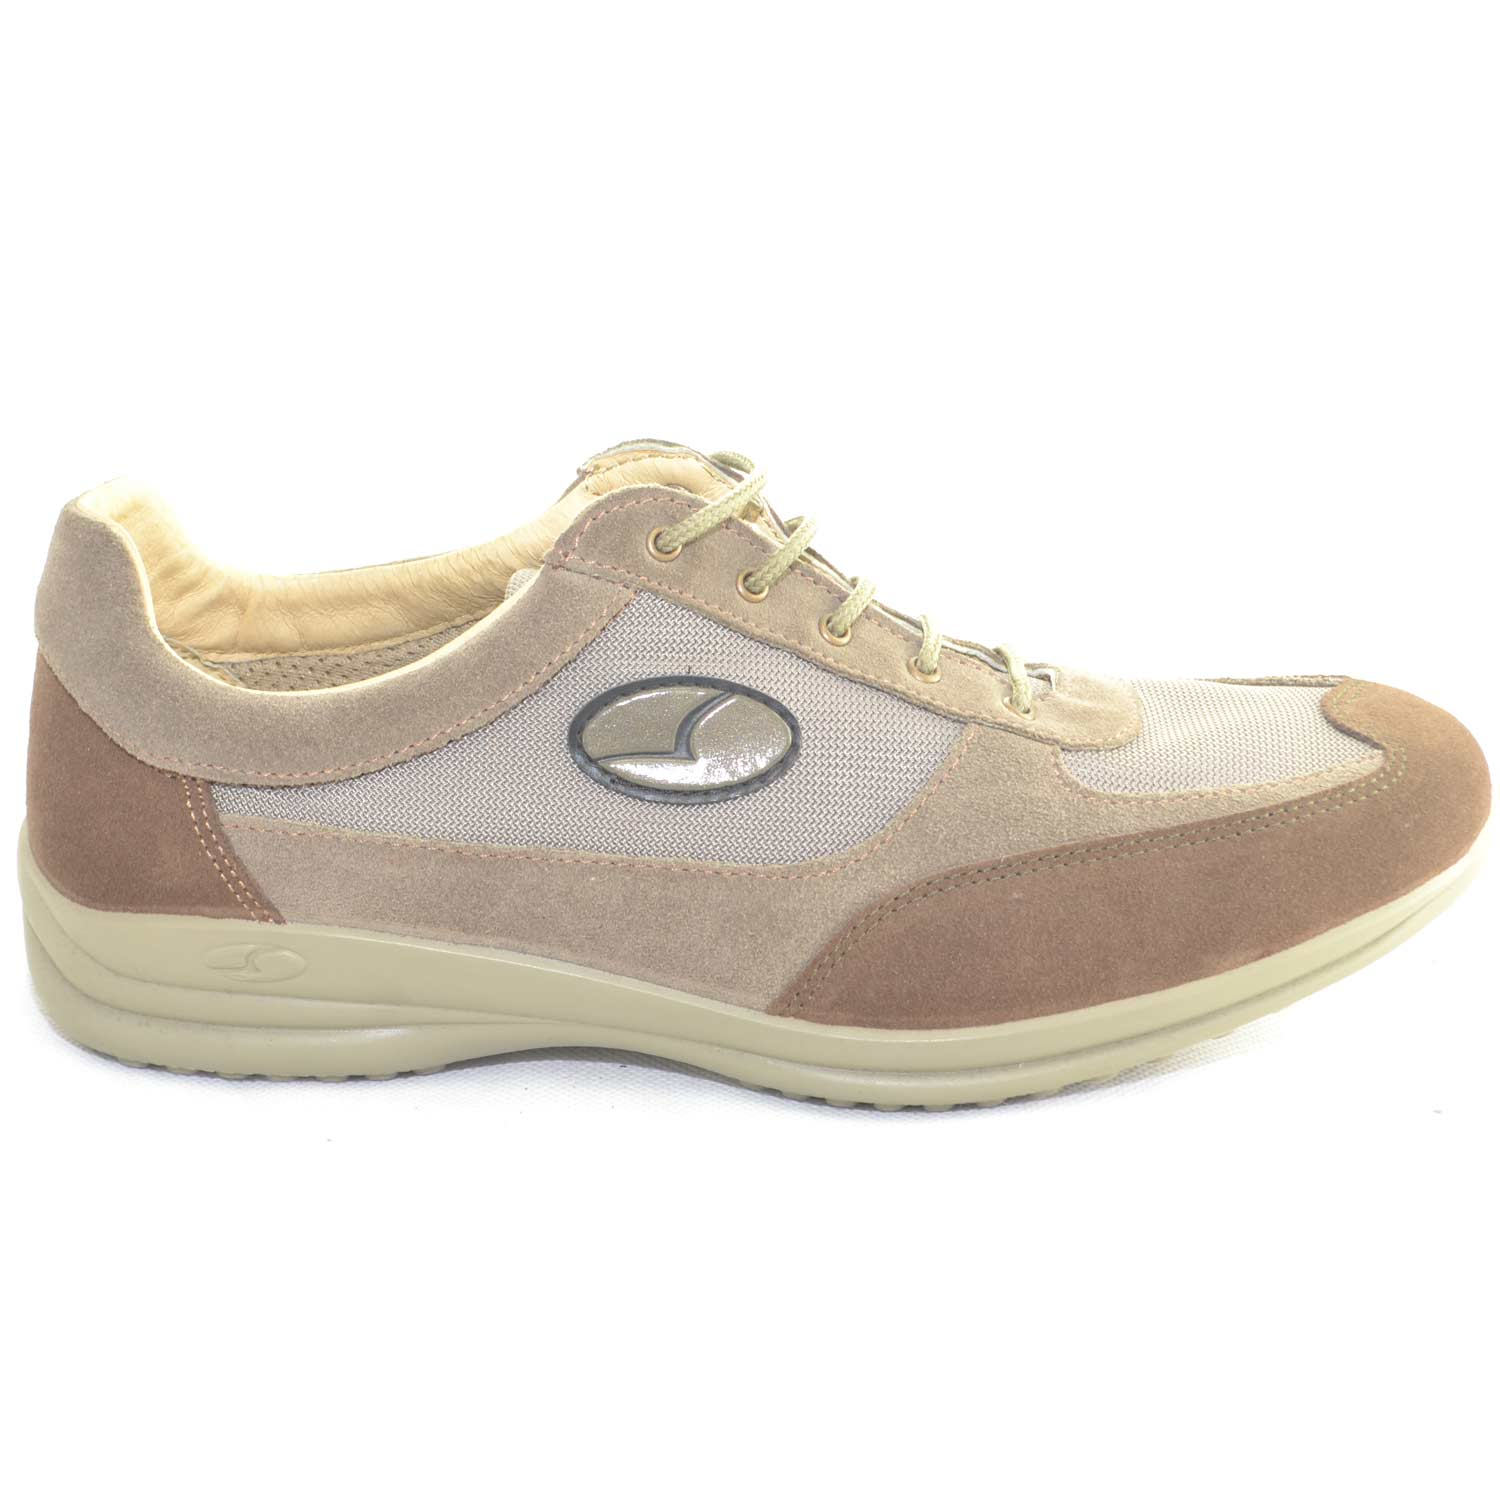 Sneakers Sportive Scarpe beige Uomo Light Step GRISPORT 8123 Made in Italy  Man Shoes comfort tessuto 696f81e6f04